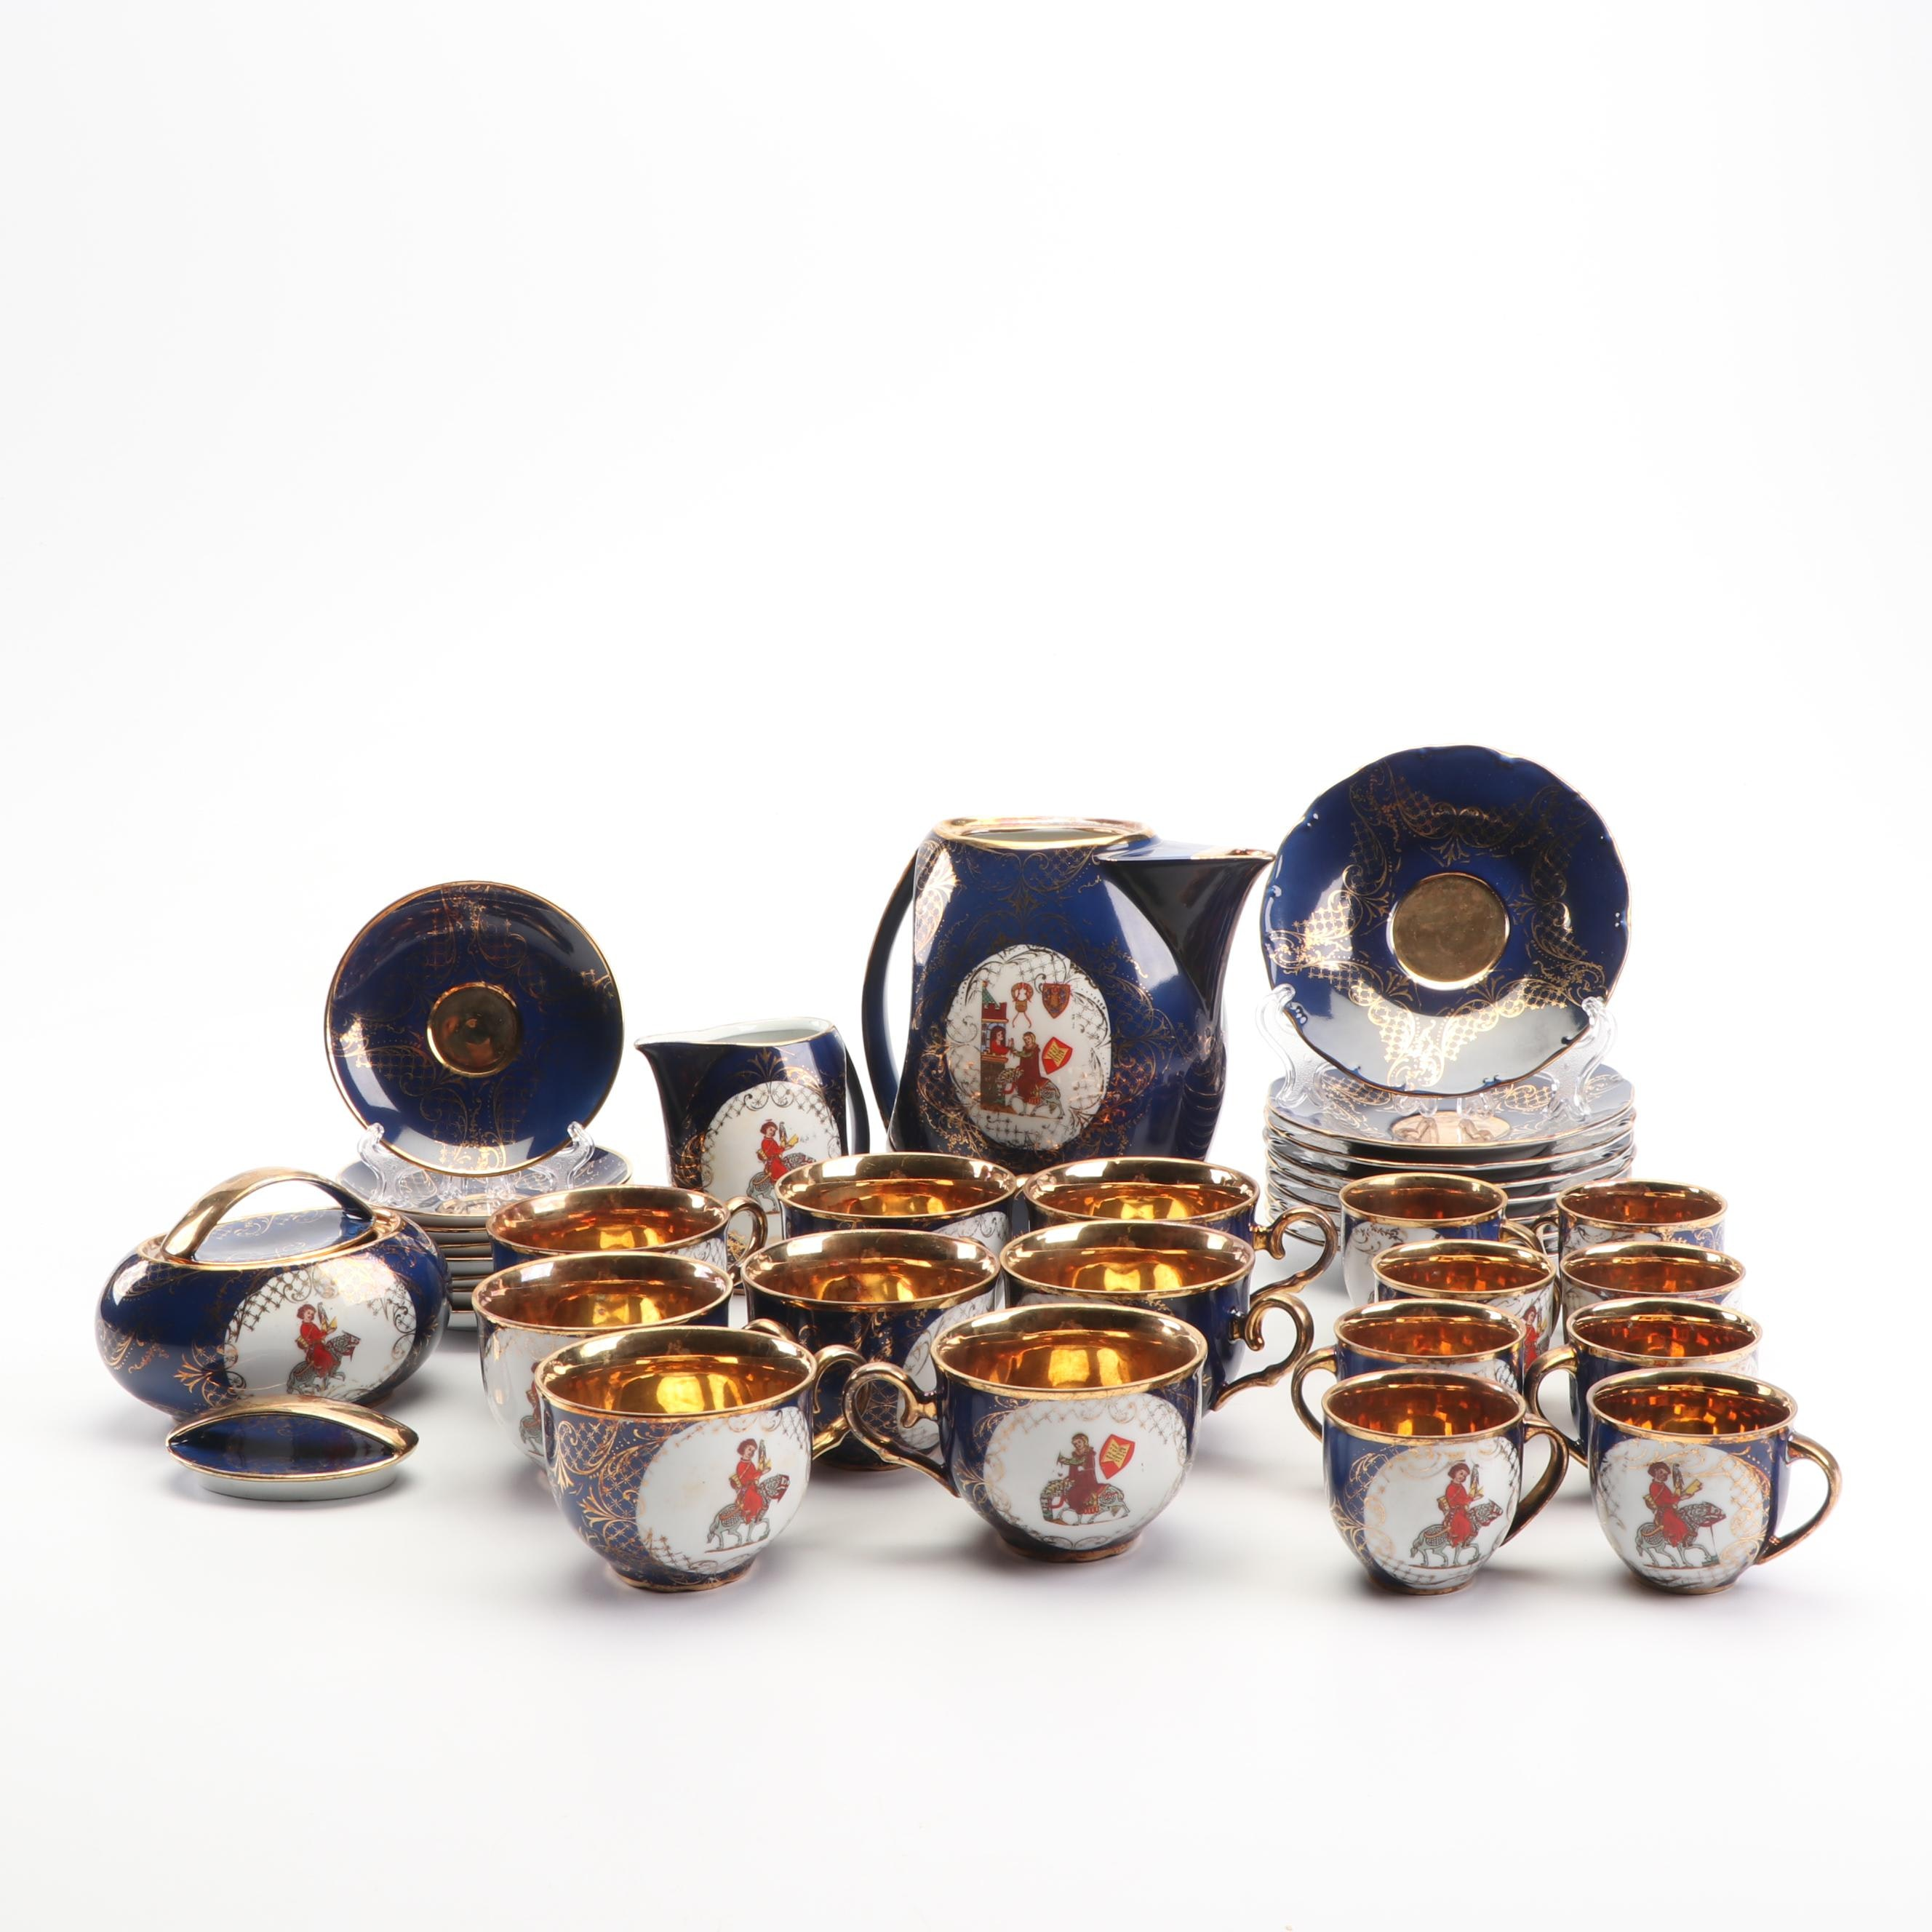 Limoges Cobalt and Gilt Porcelain Tea Service